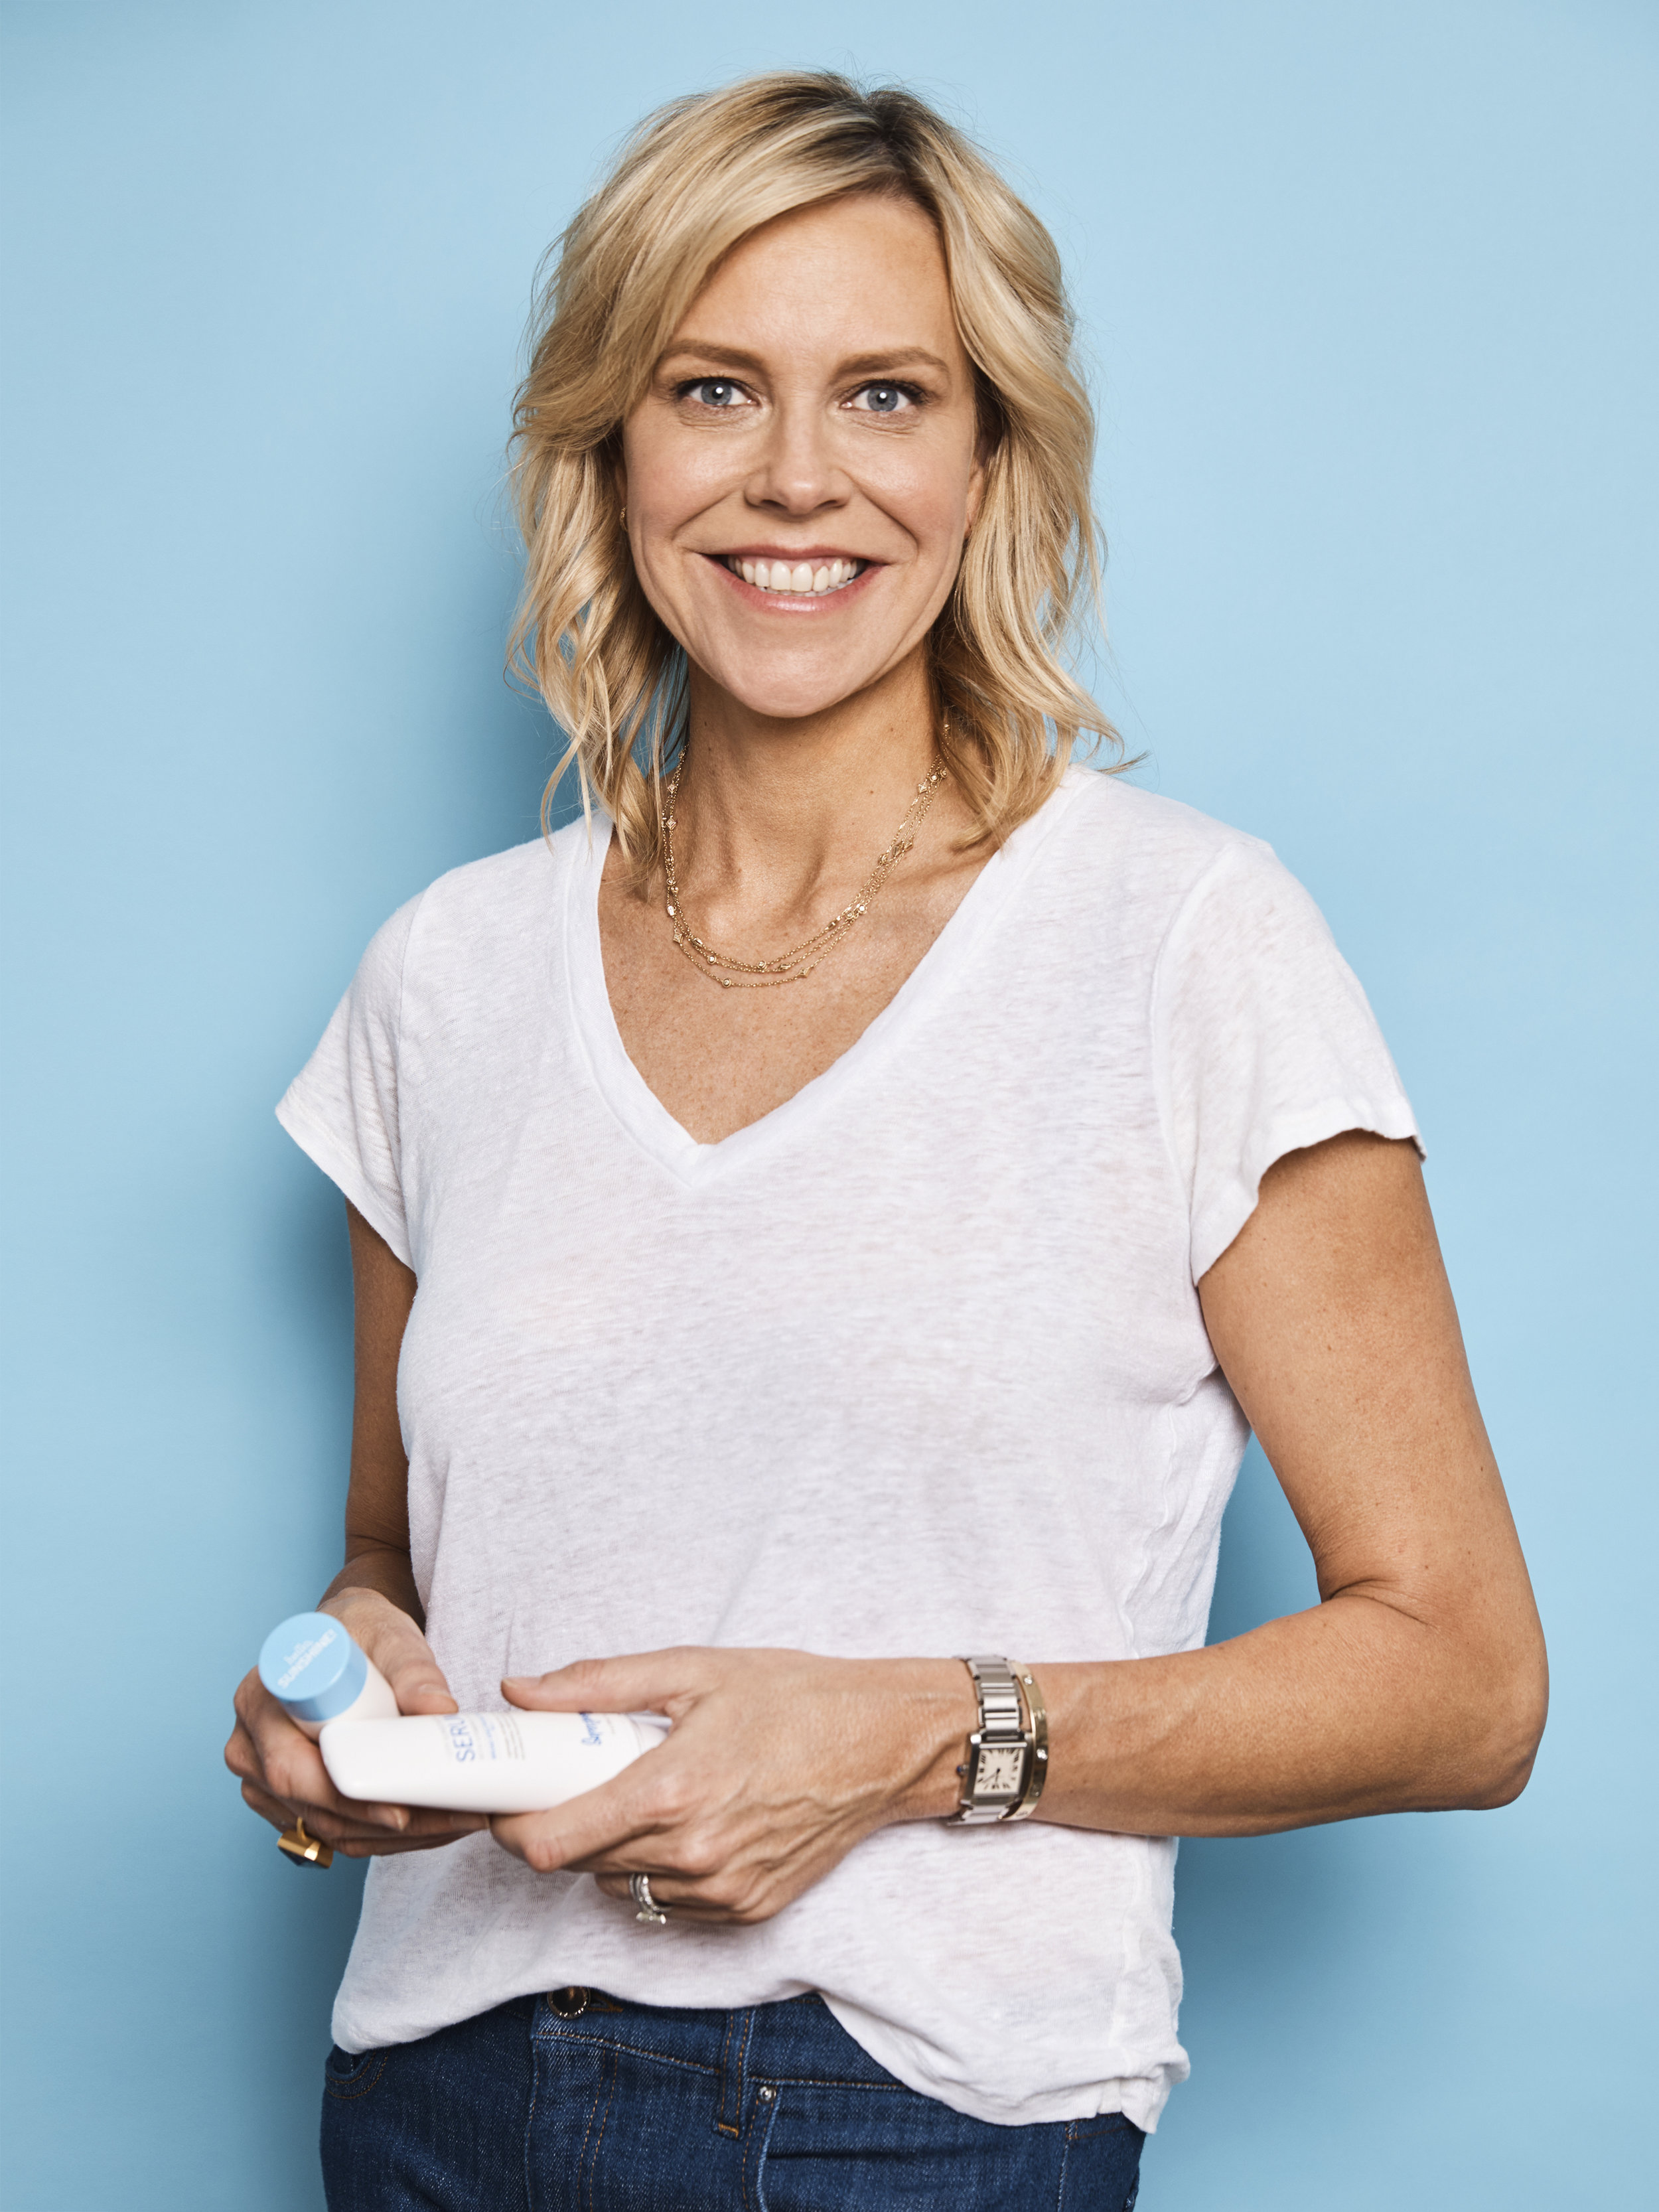 Holly Thaggard, Founder and CEO of Supergoop!